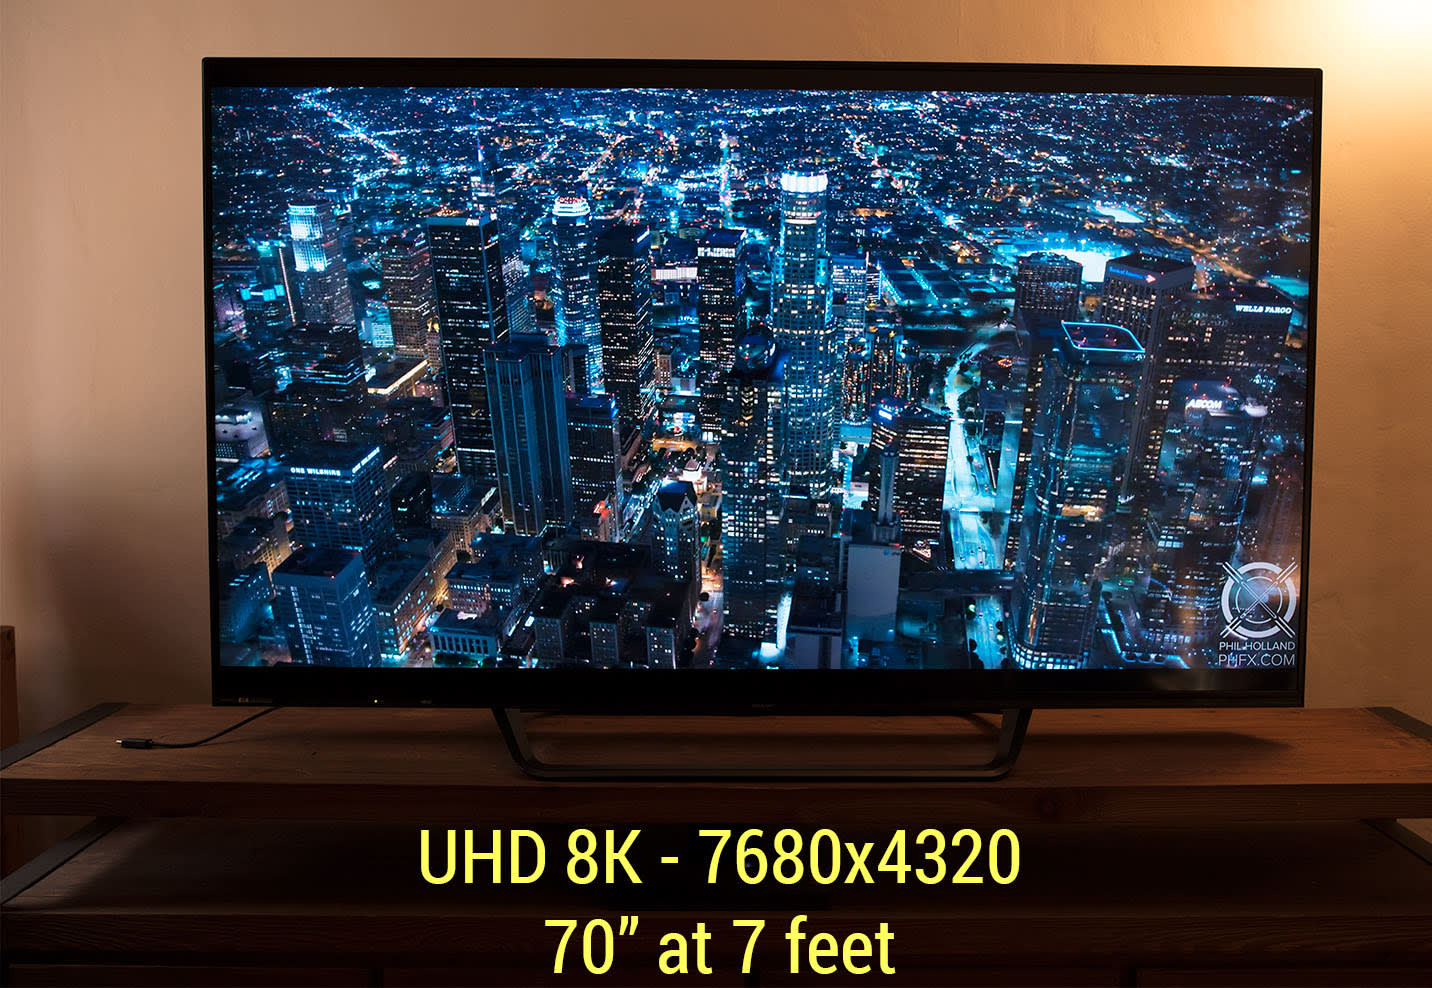 RED and Sharp team up on 8K monitor technology